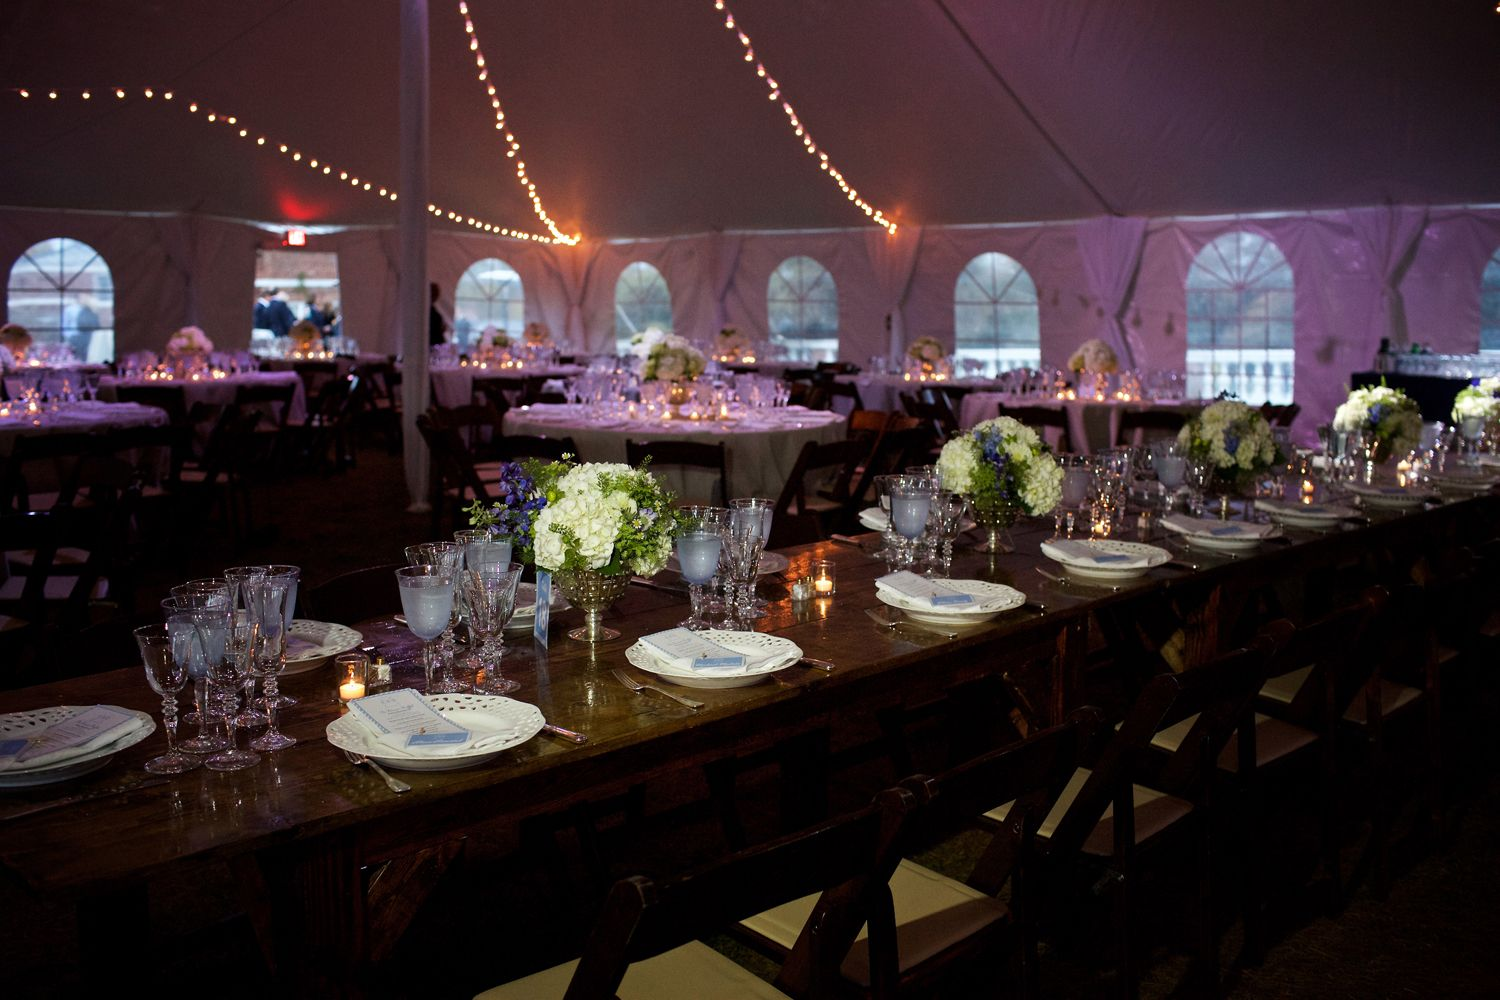 Head Table for Two at Outdoor Wedding | Outdoor wedding ...  |Outdoor Wedding Reception Head Table